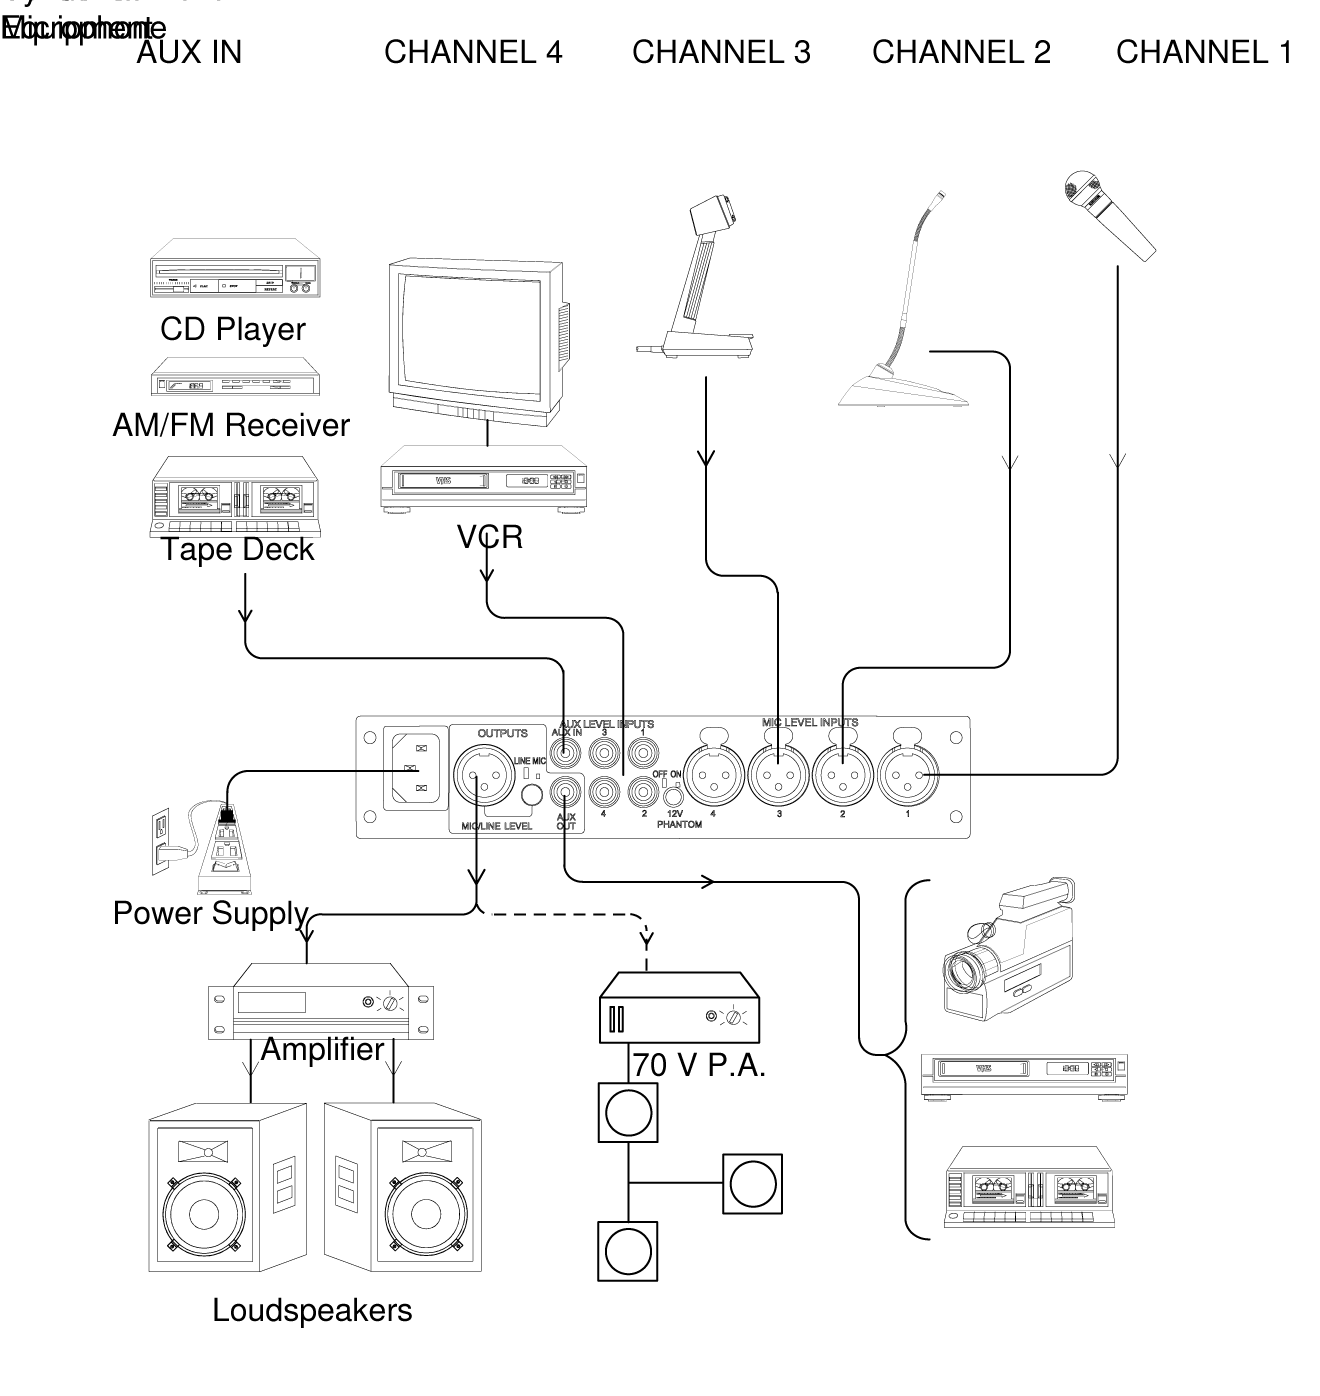 Shure Publications User Guides Scm268 4 Blade 220 Vac Wiring Diagram Level Input Connecting Both Auxiliary And Microphone Inputs To A Single Channel Is Not Recommended Because The Would Be Able